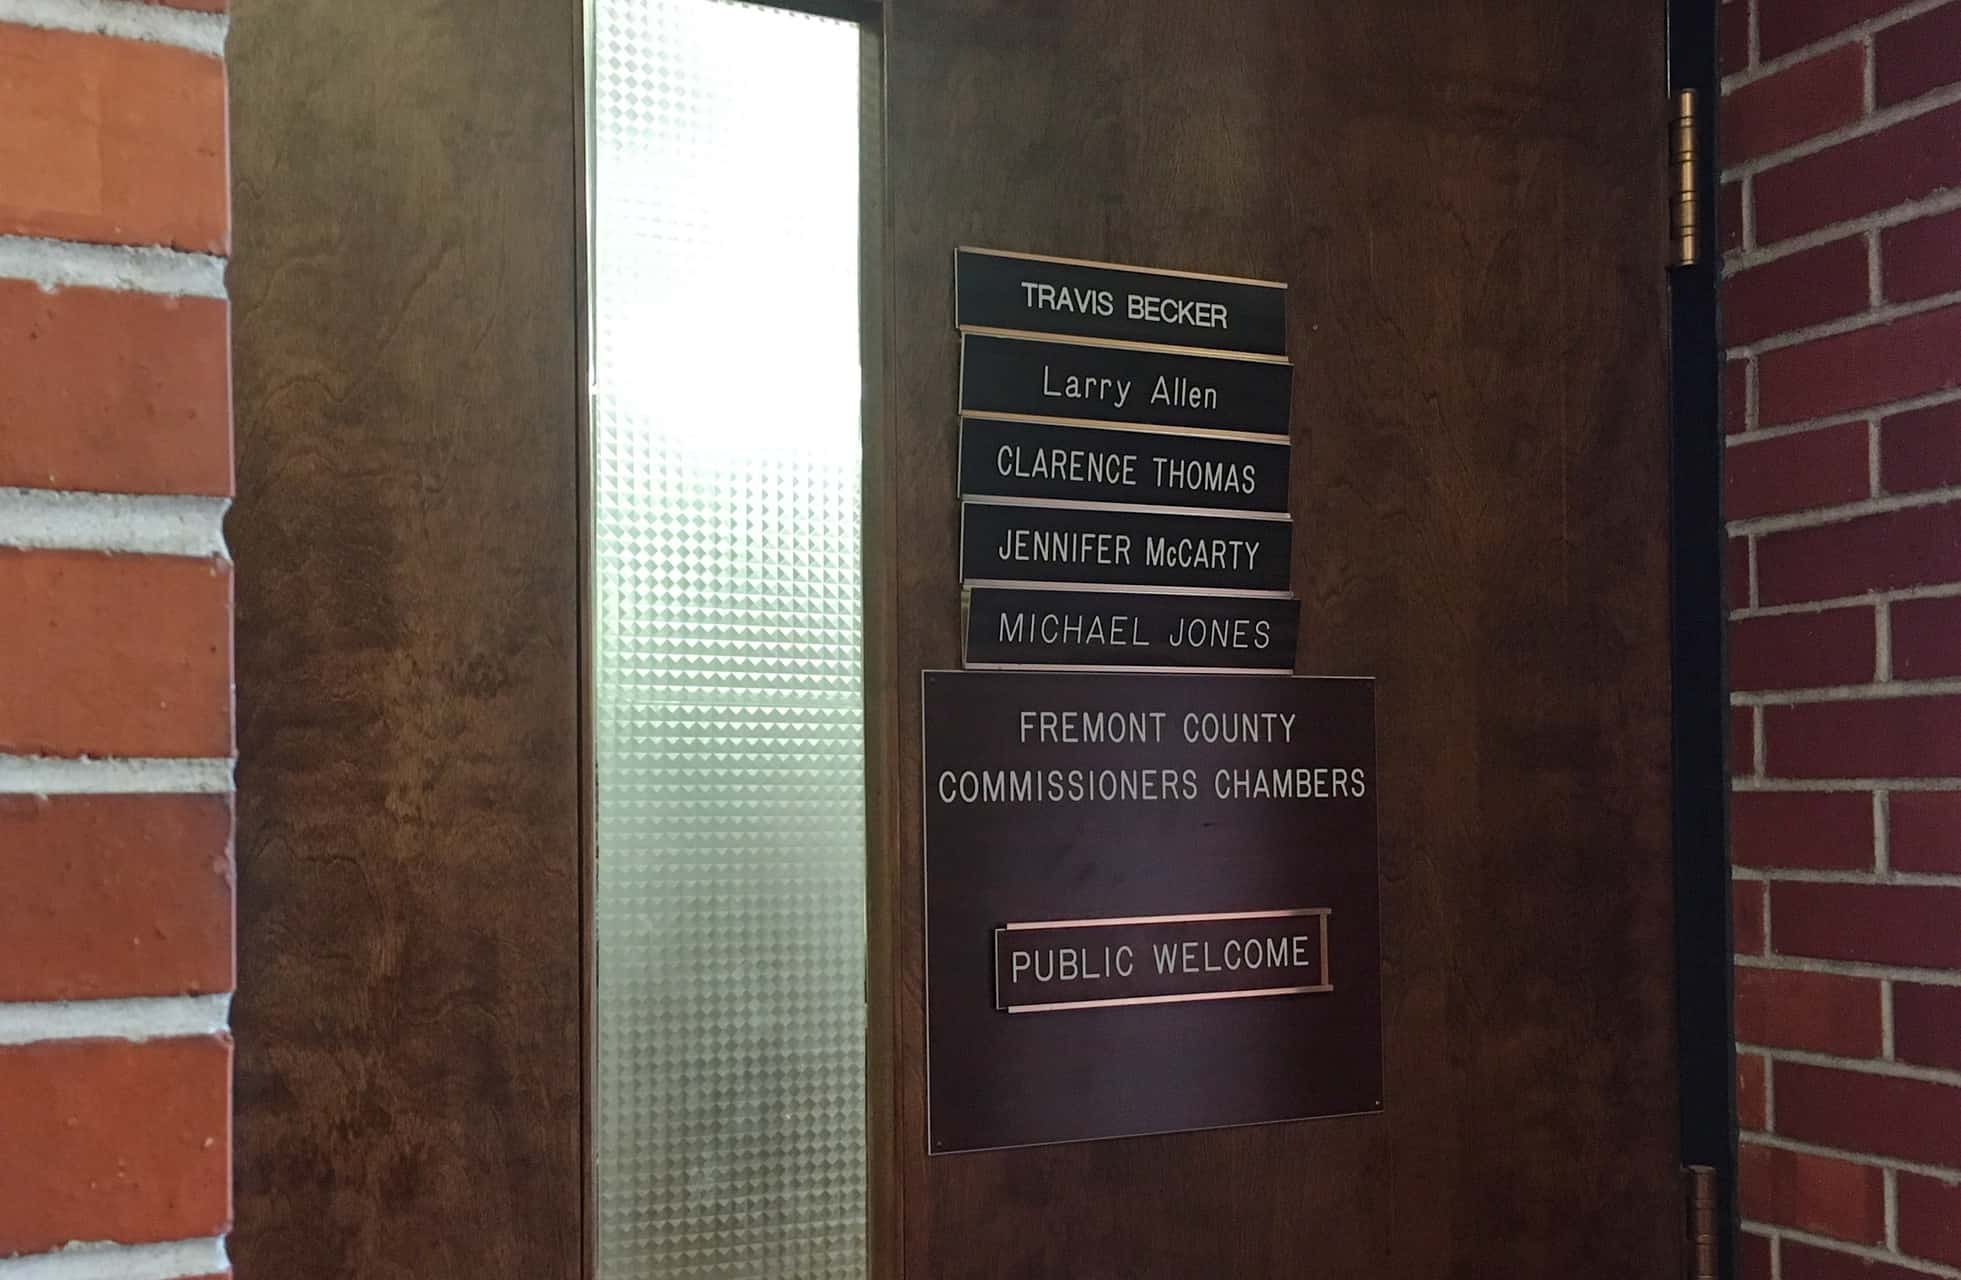 Retail liquor license, interviews and more at the Commission meeting Tuesday | County 10™